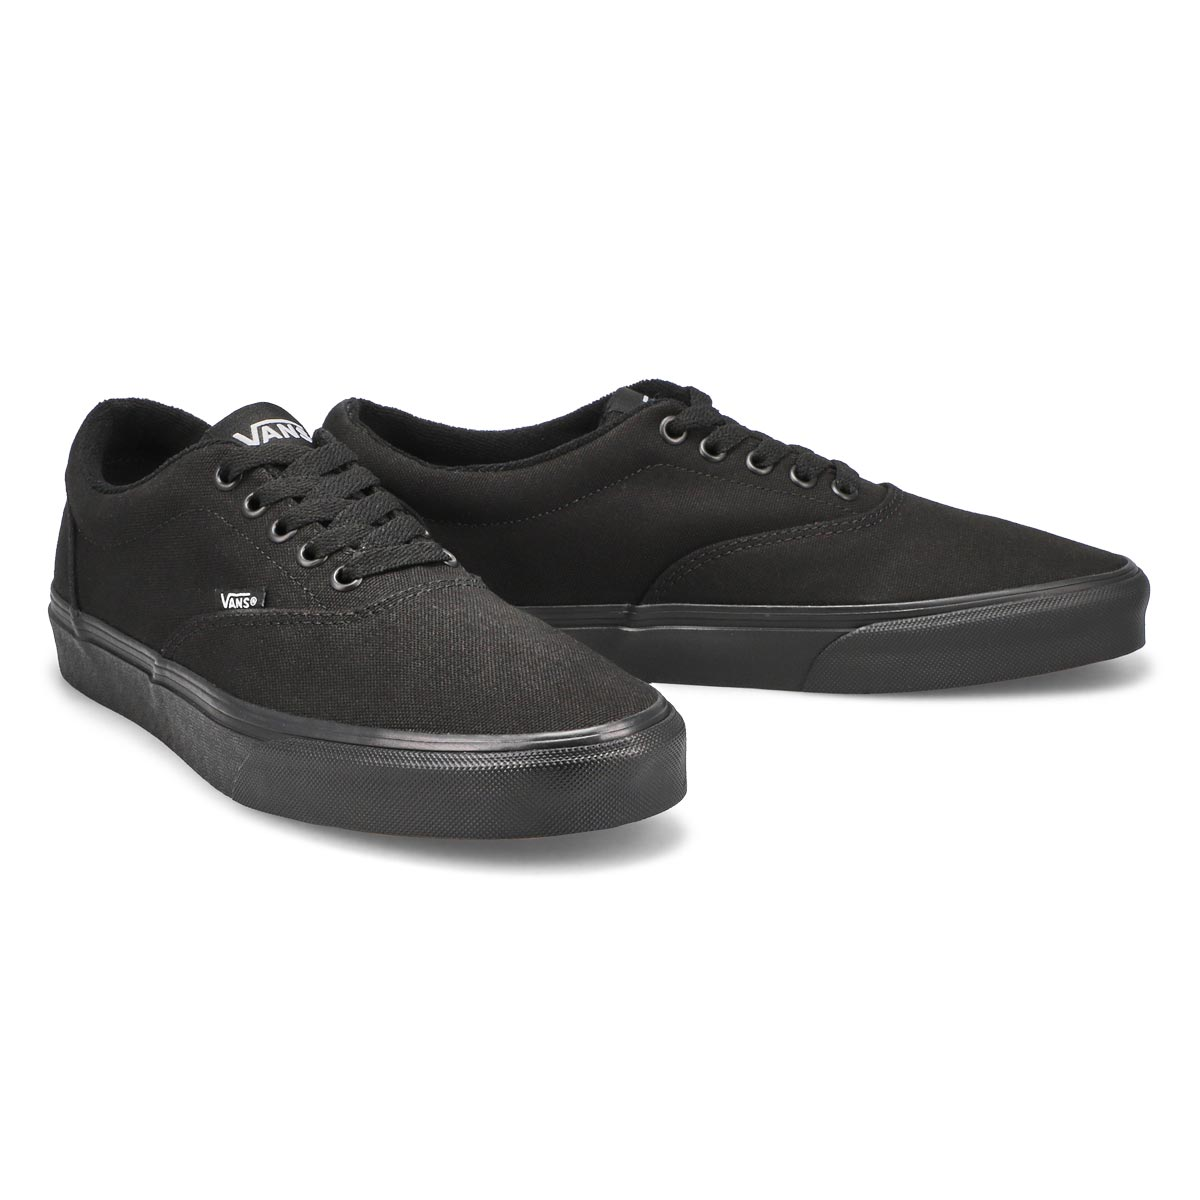 Mns Doheny blk/blk lace up sneaker